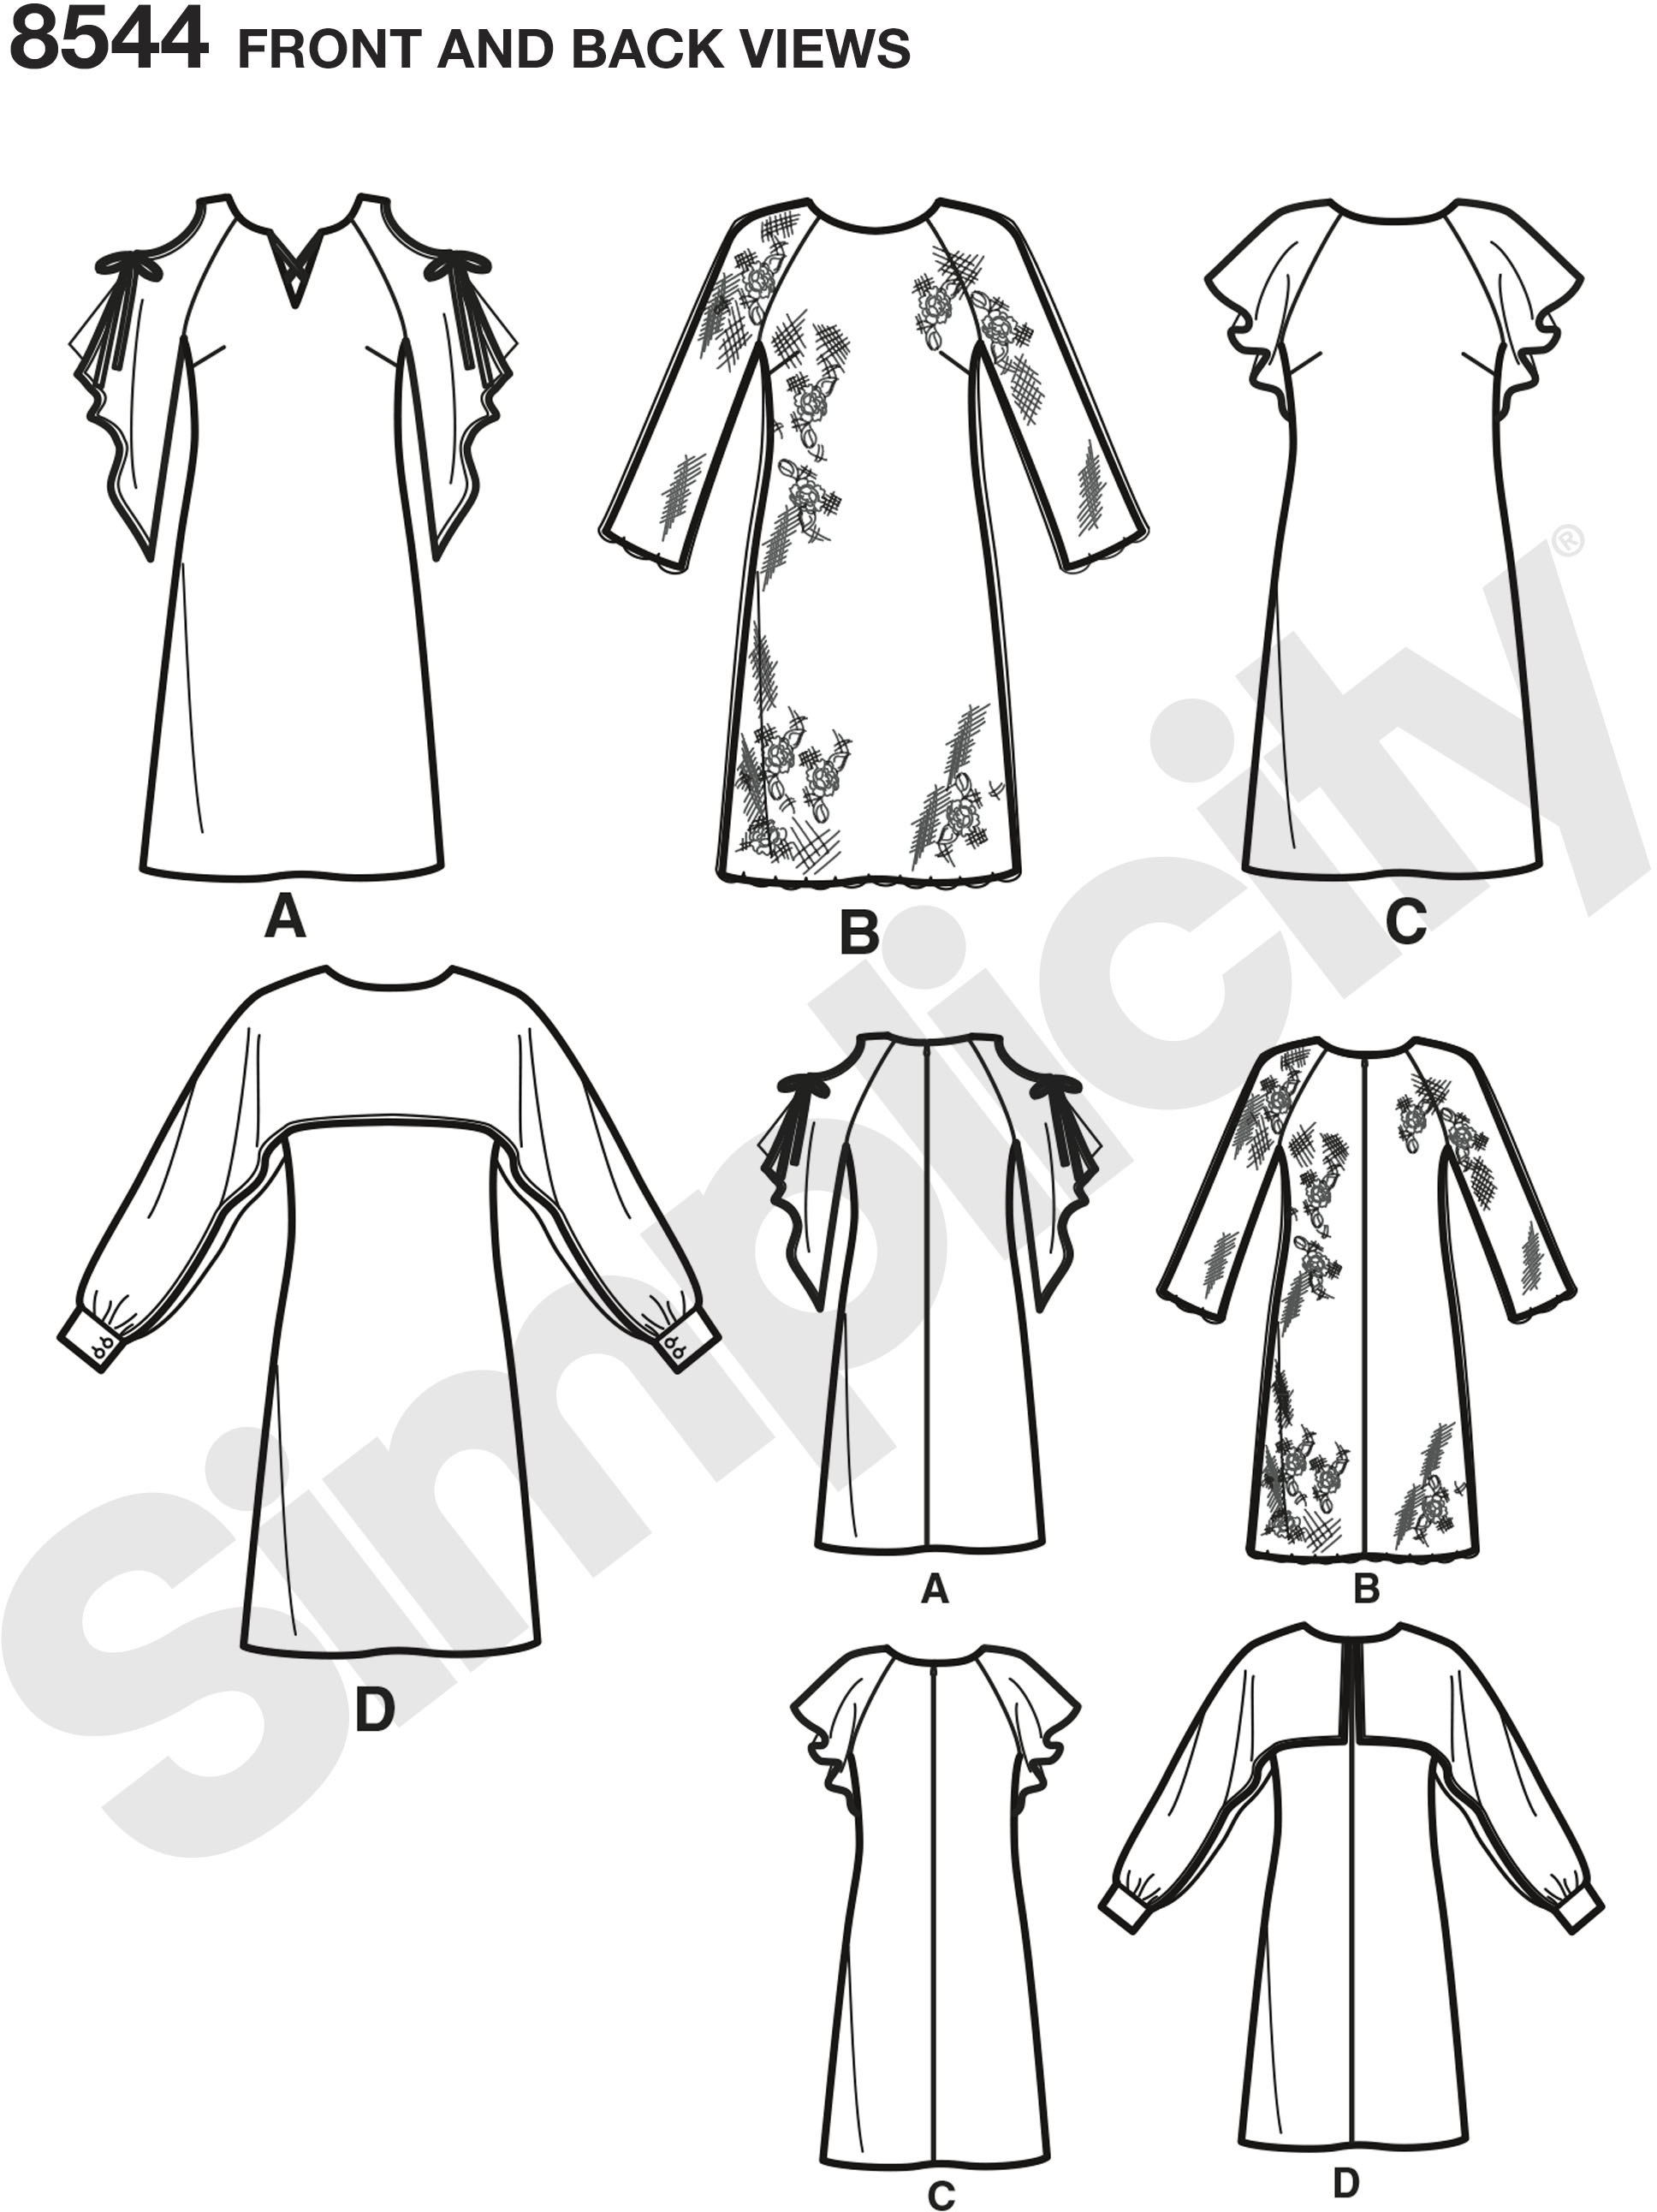 Misses and Miss nd Miss Petite dress pattern from Simplicity with neckline, sleeve and fabric variations are perfect for day or evening. Great for silky type fabrics.